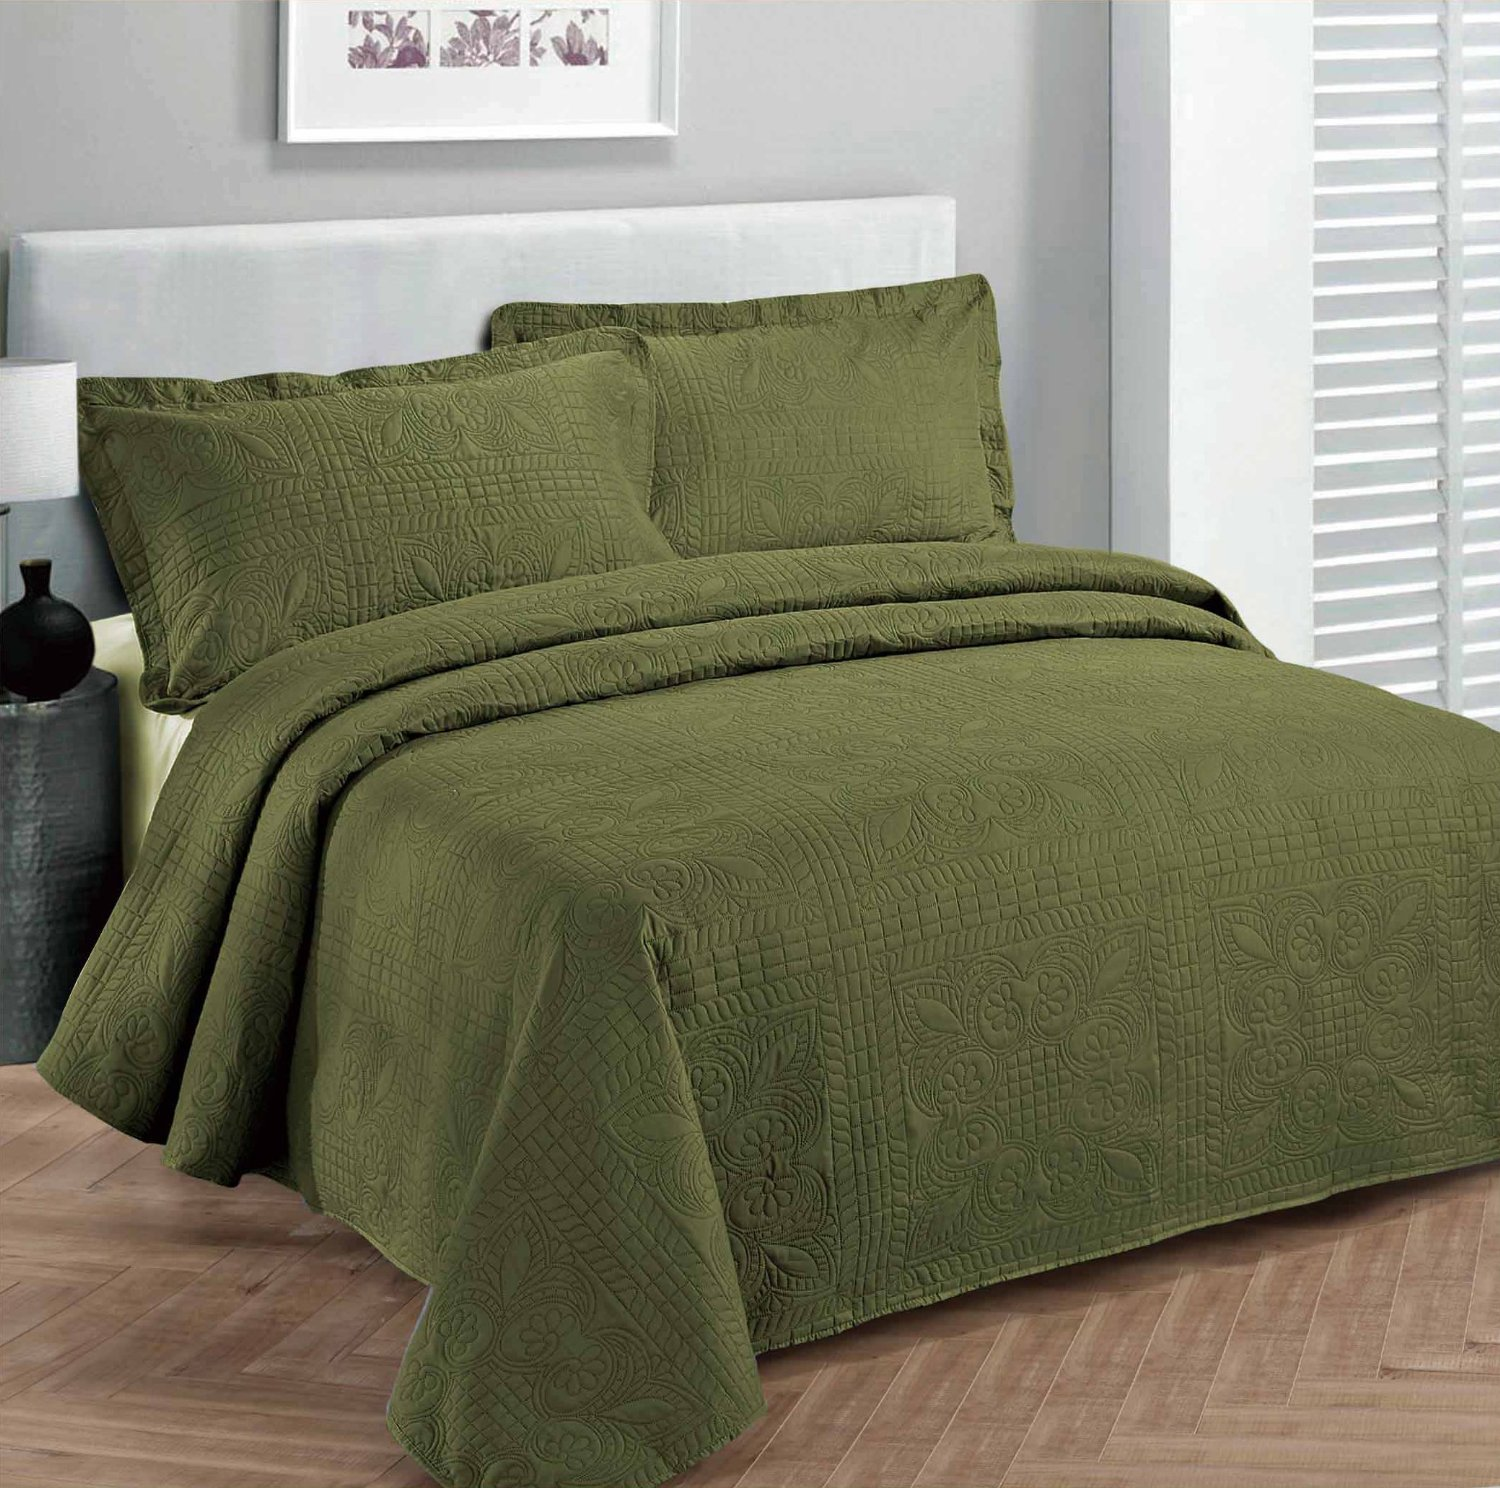 Top 5 Green Bedspreads Youll Love Interiors By Color